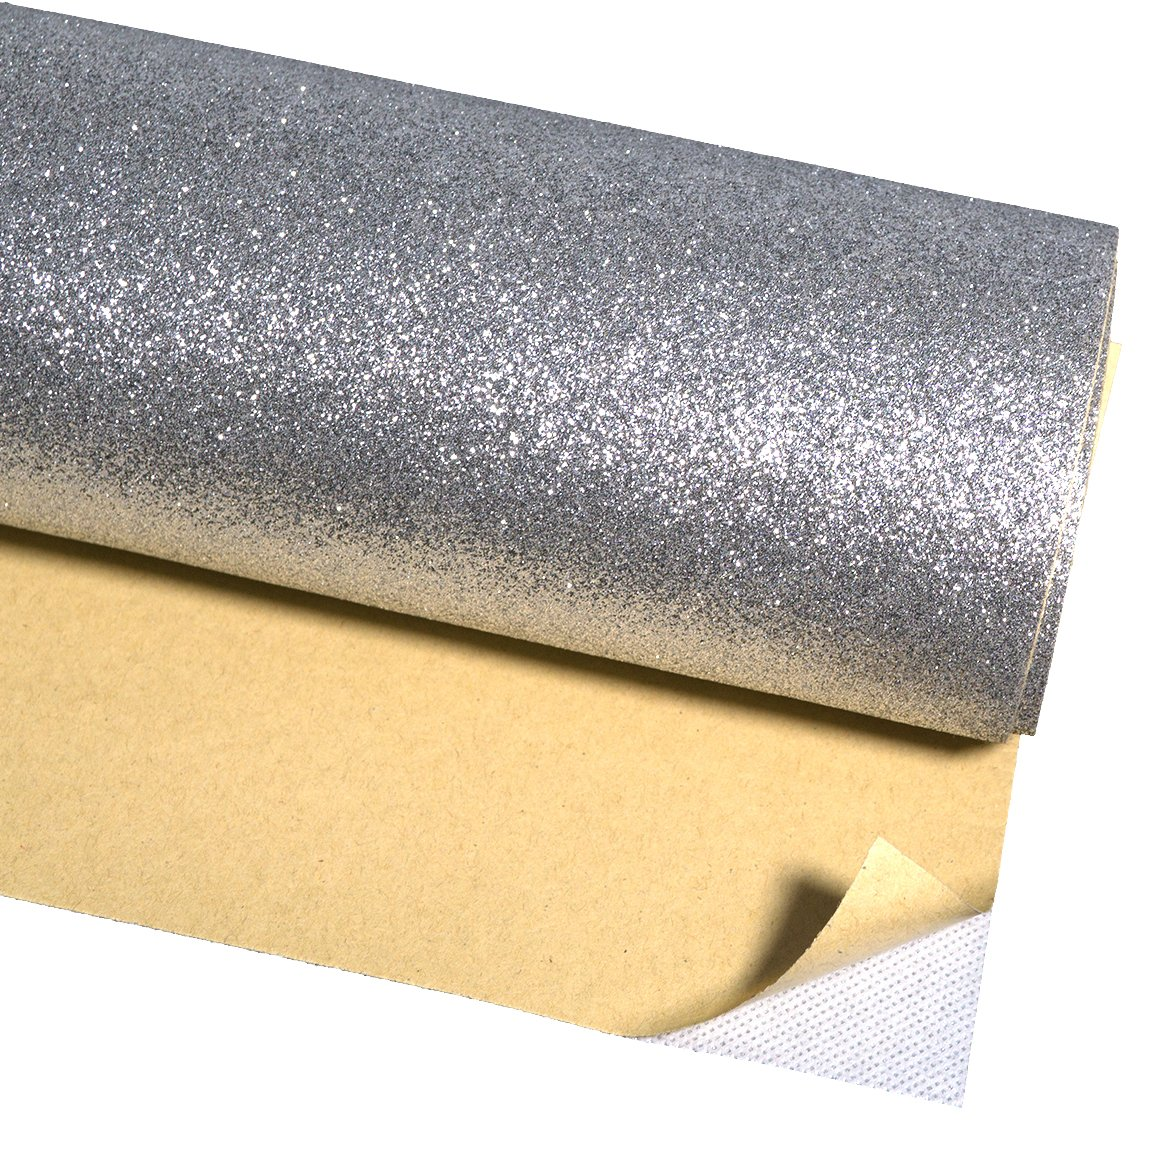 Self Adhesive Glitter Wallpaper for Walls Peel and Stick Roll Decor ...